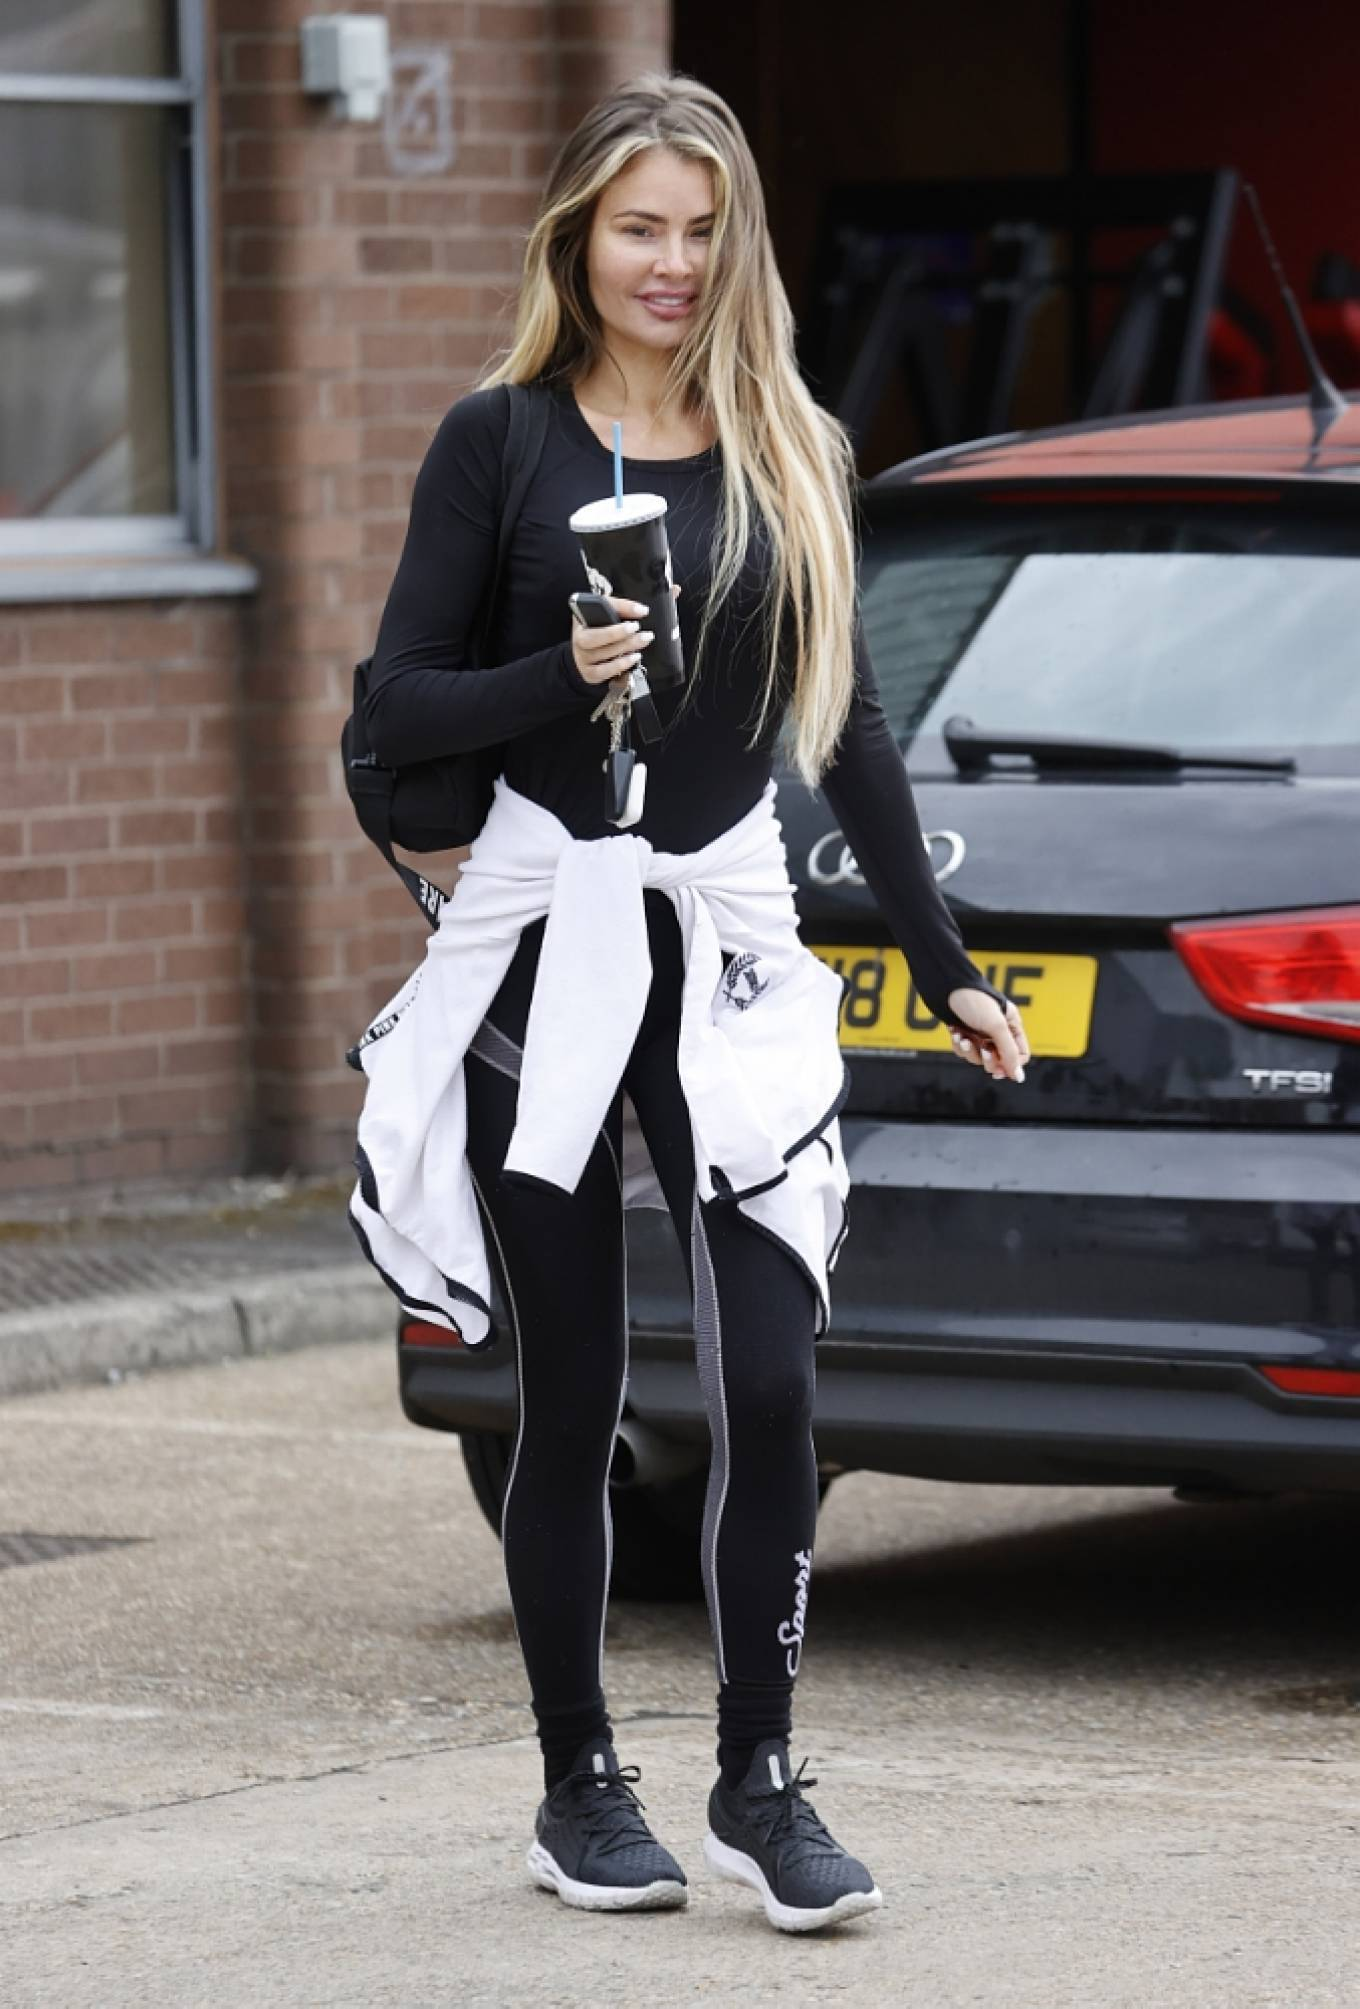 Chloe Sims 2021 : Chloe Sims – Seen make up free after a workout in Essex-01